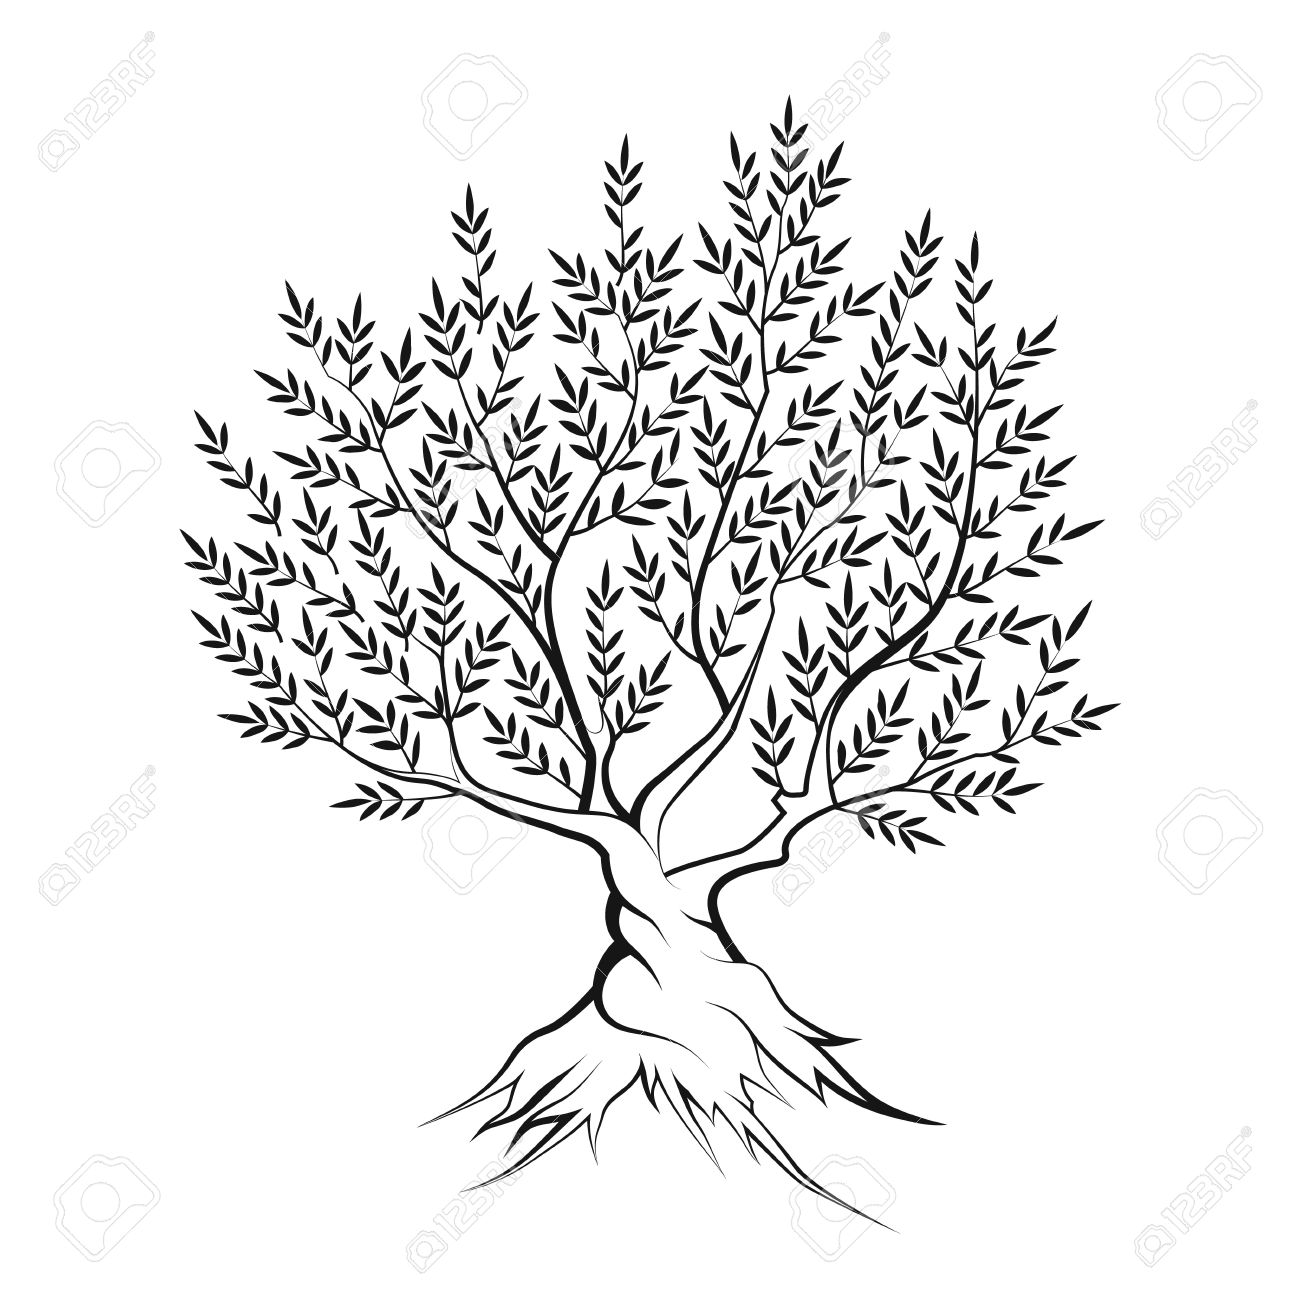 Olive Tree Outline Silhouette Icon Isolated On White Background